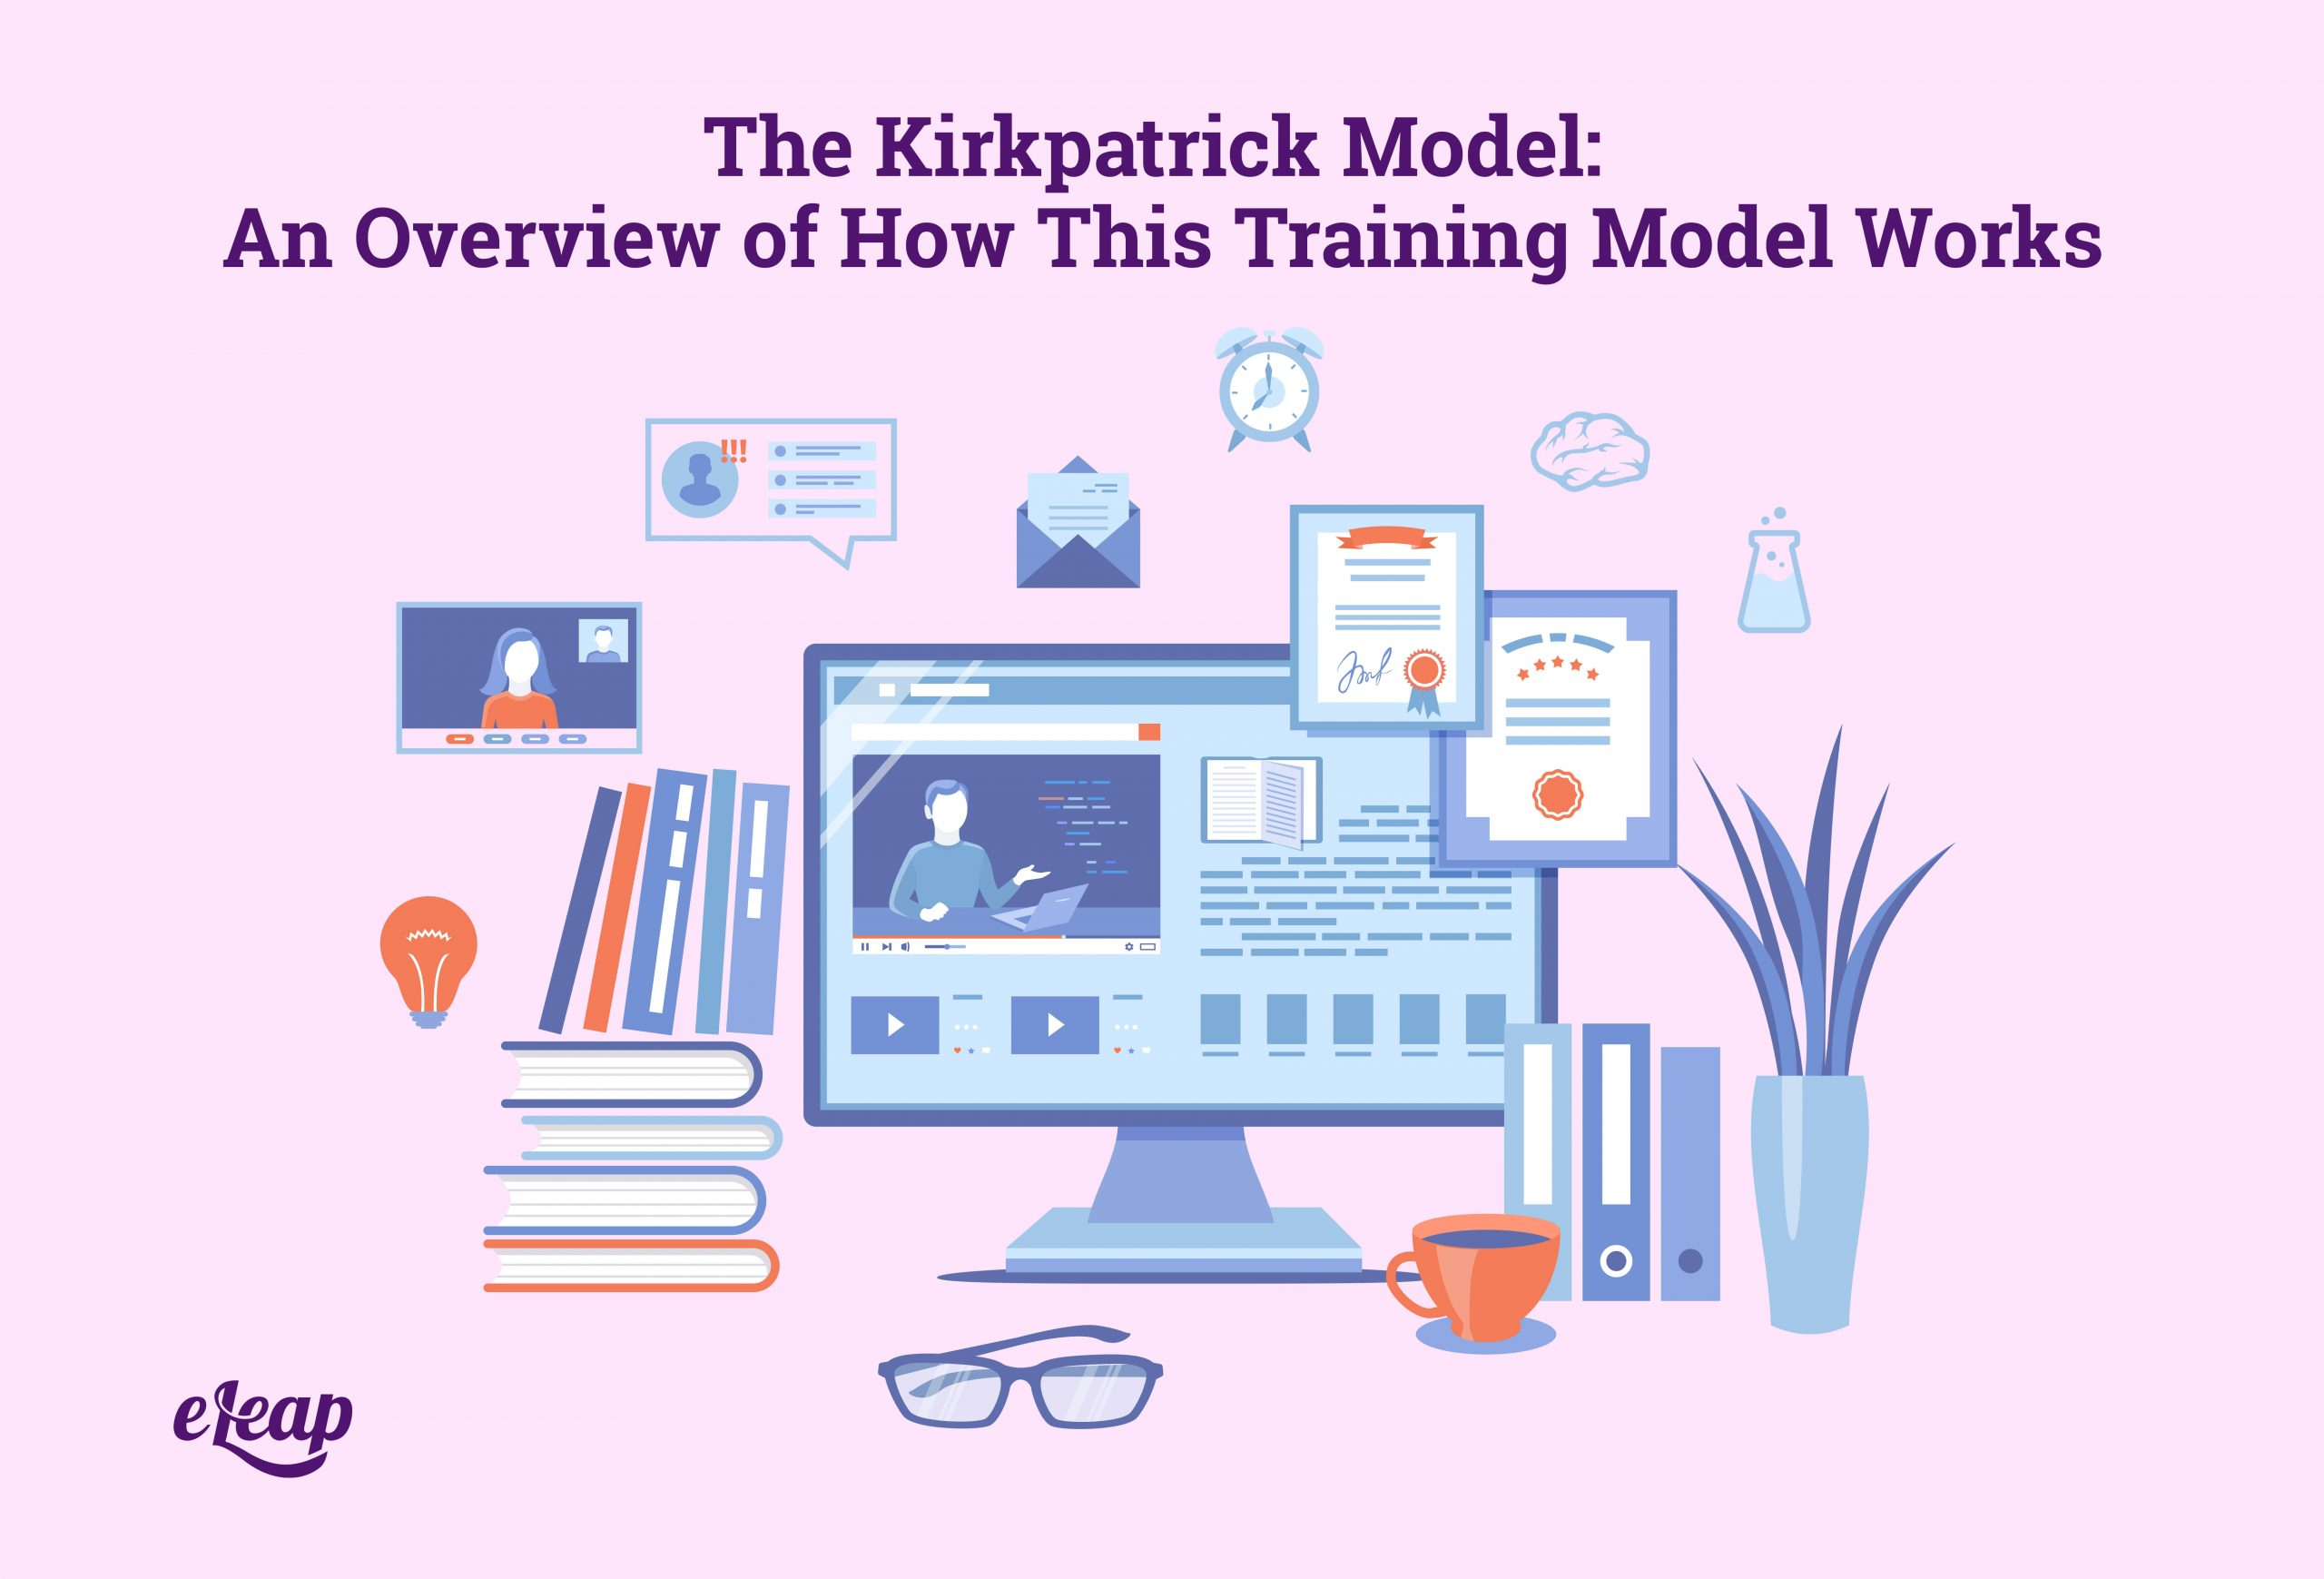 The Kirkpatrick Model: An Overview of How This Training Model Works